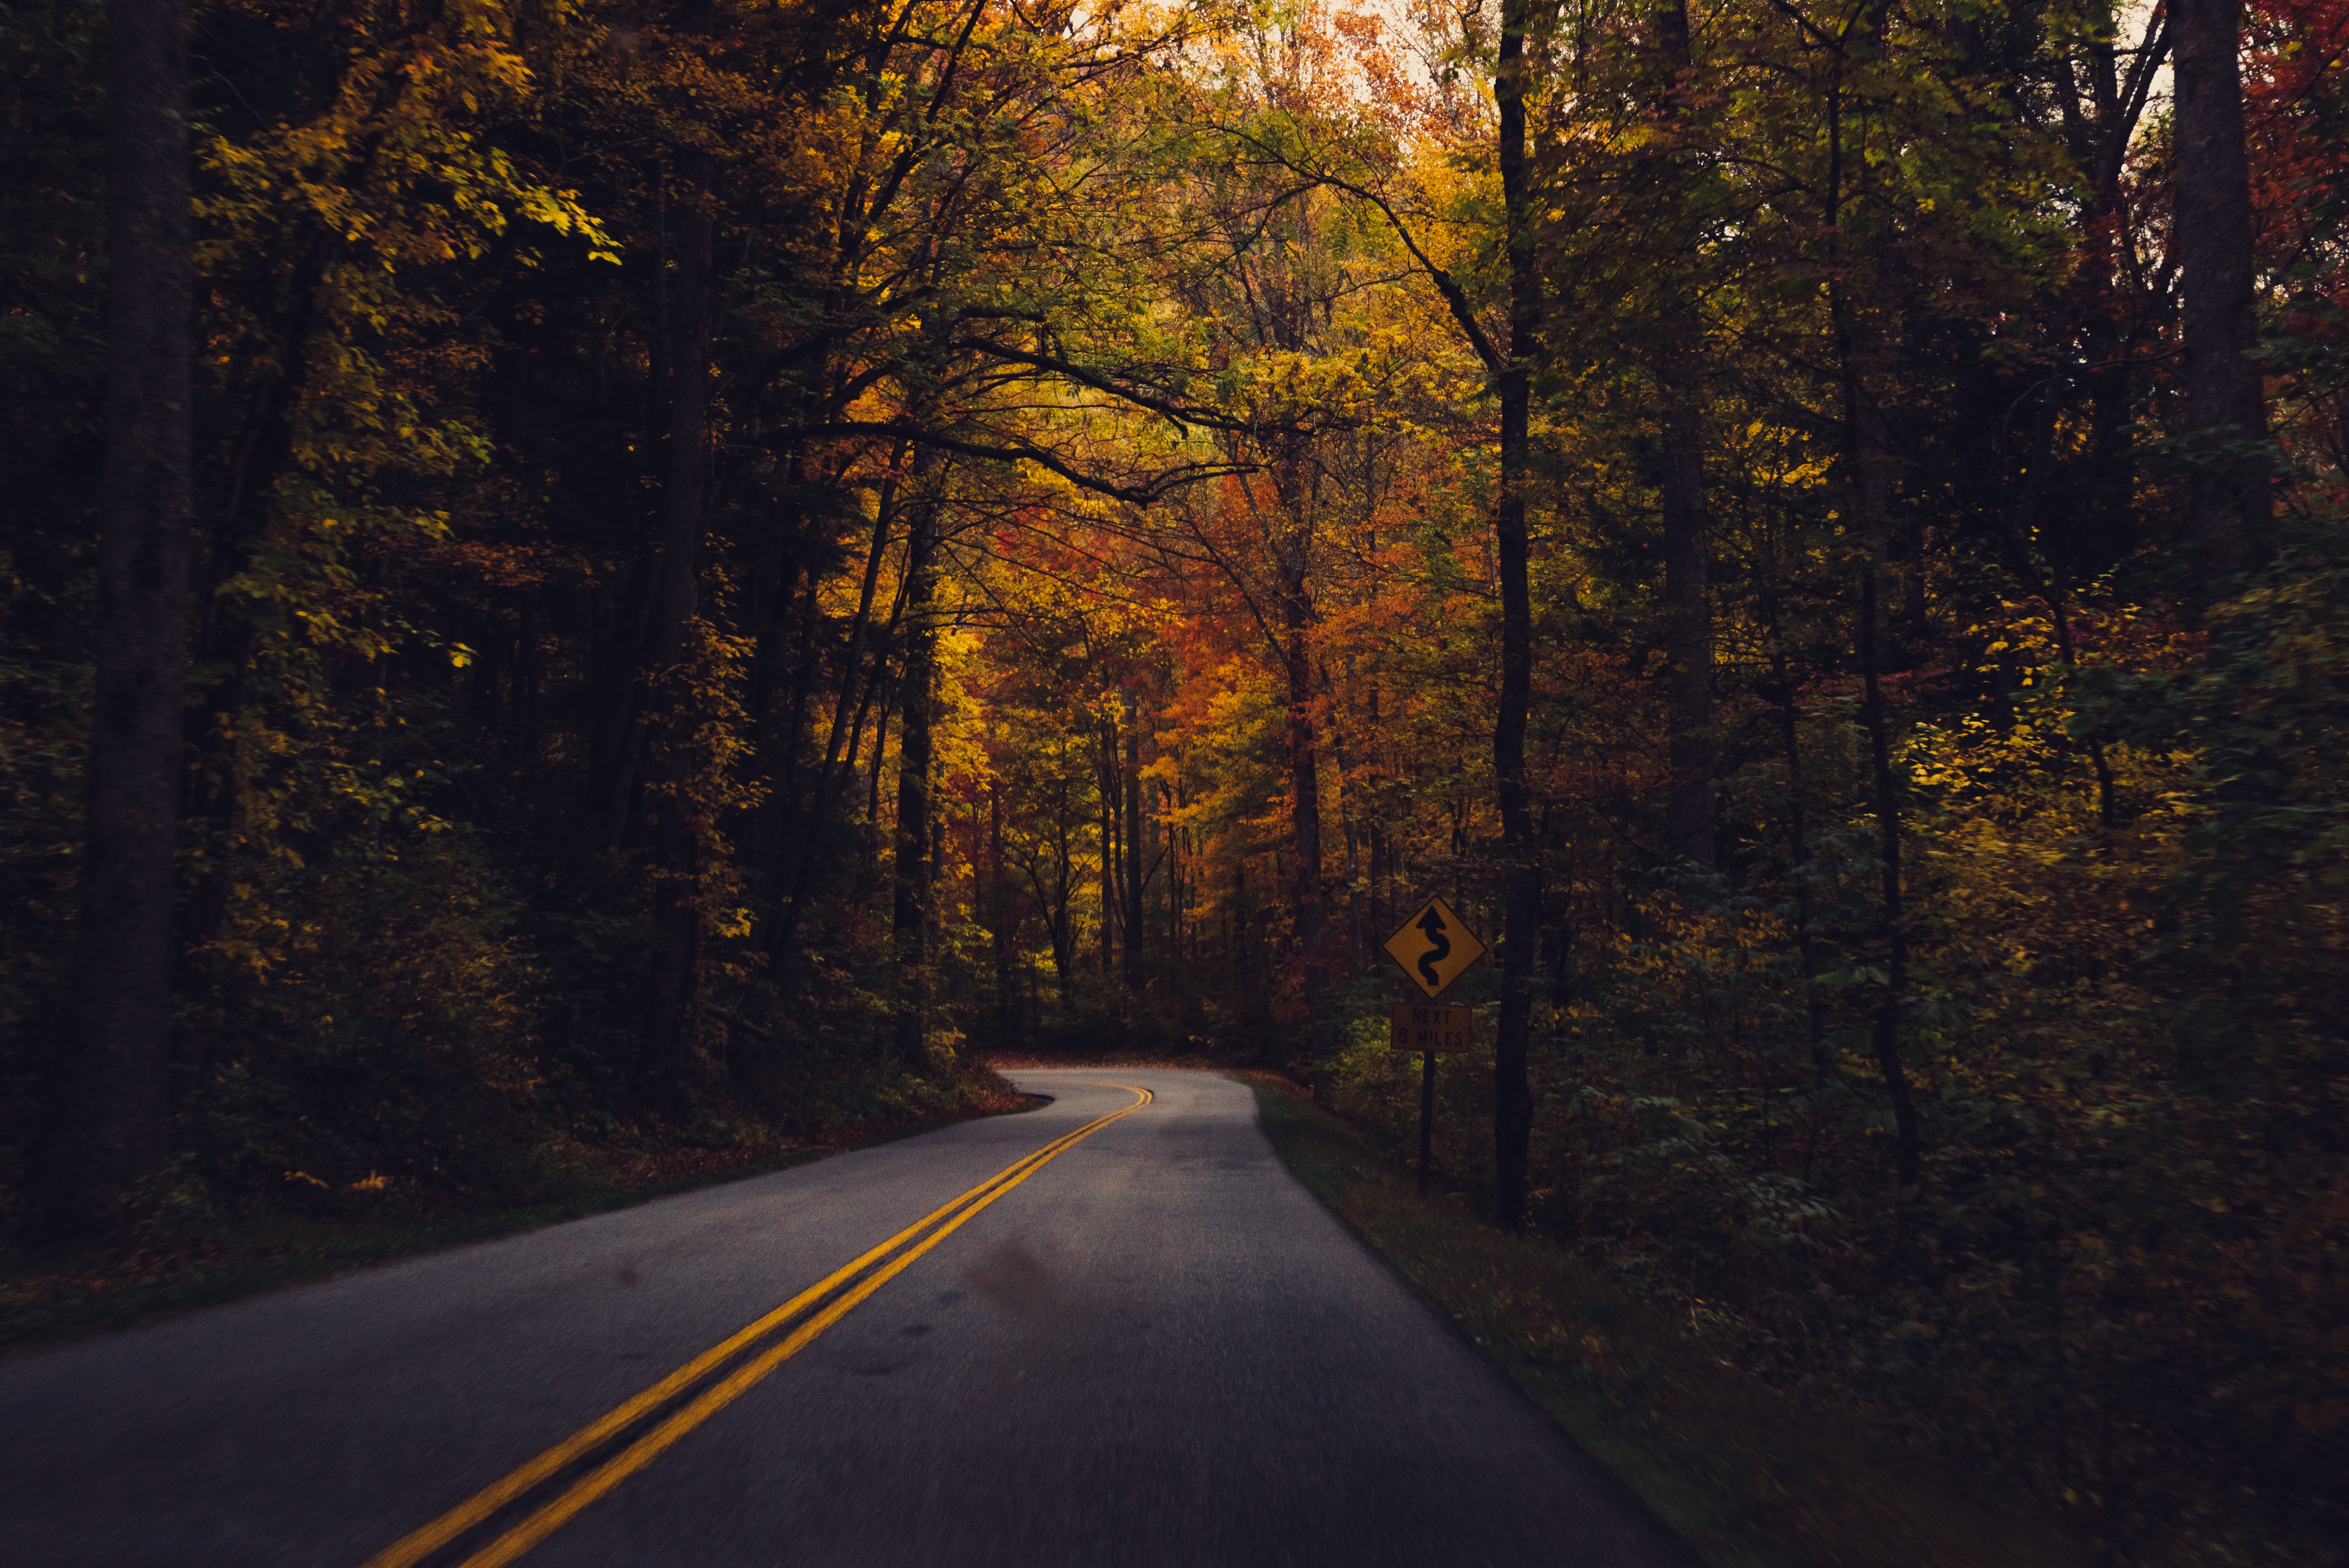 A turn in a tree-lined road in the Great Smoky Mountains in autumn